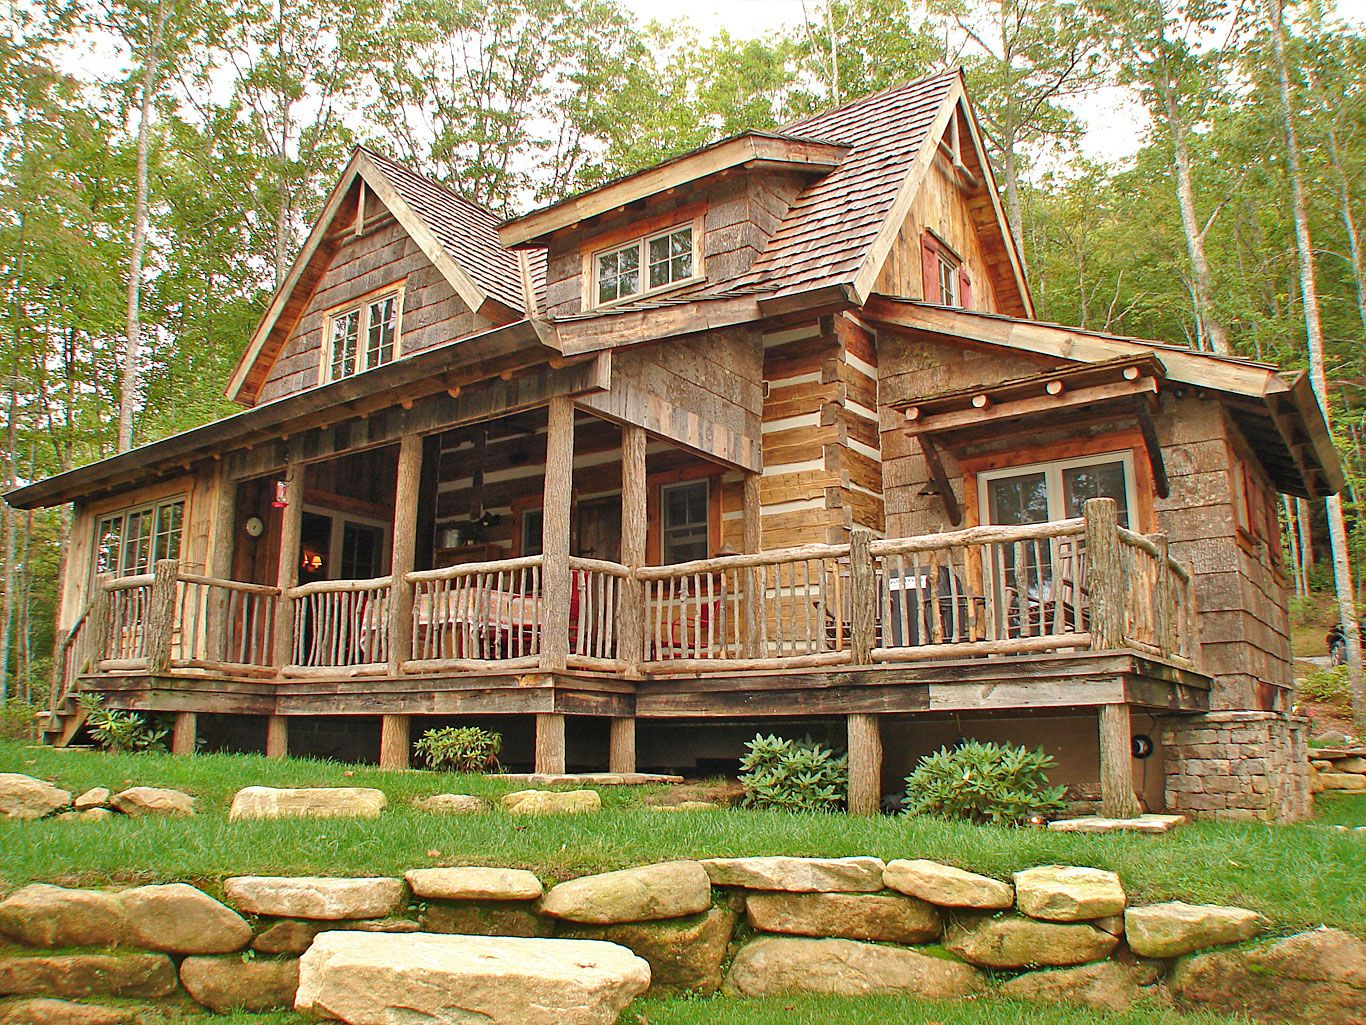 Redthorn Cabin Mountainworks Ltd Rustic Living Log Home Timber Frame Amp Country Style